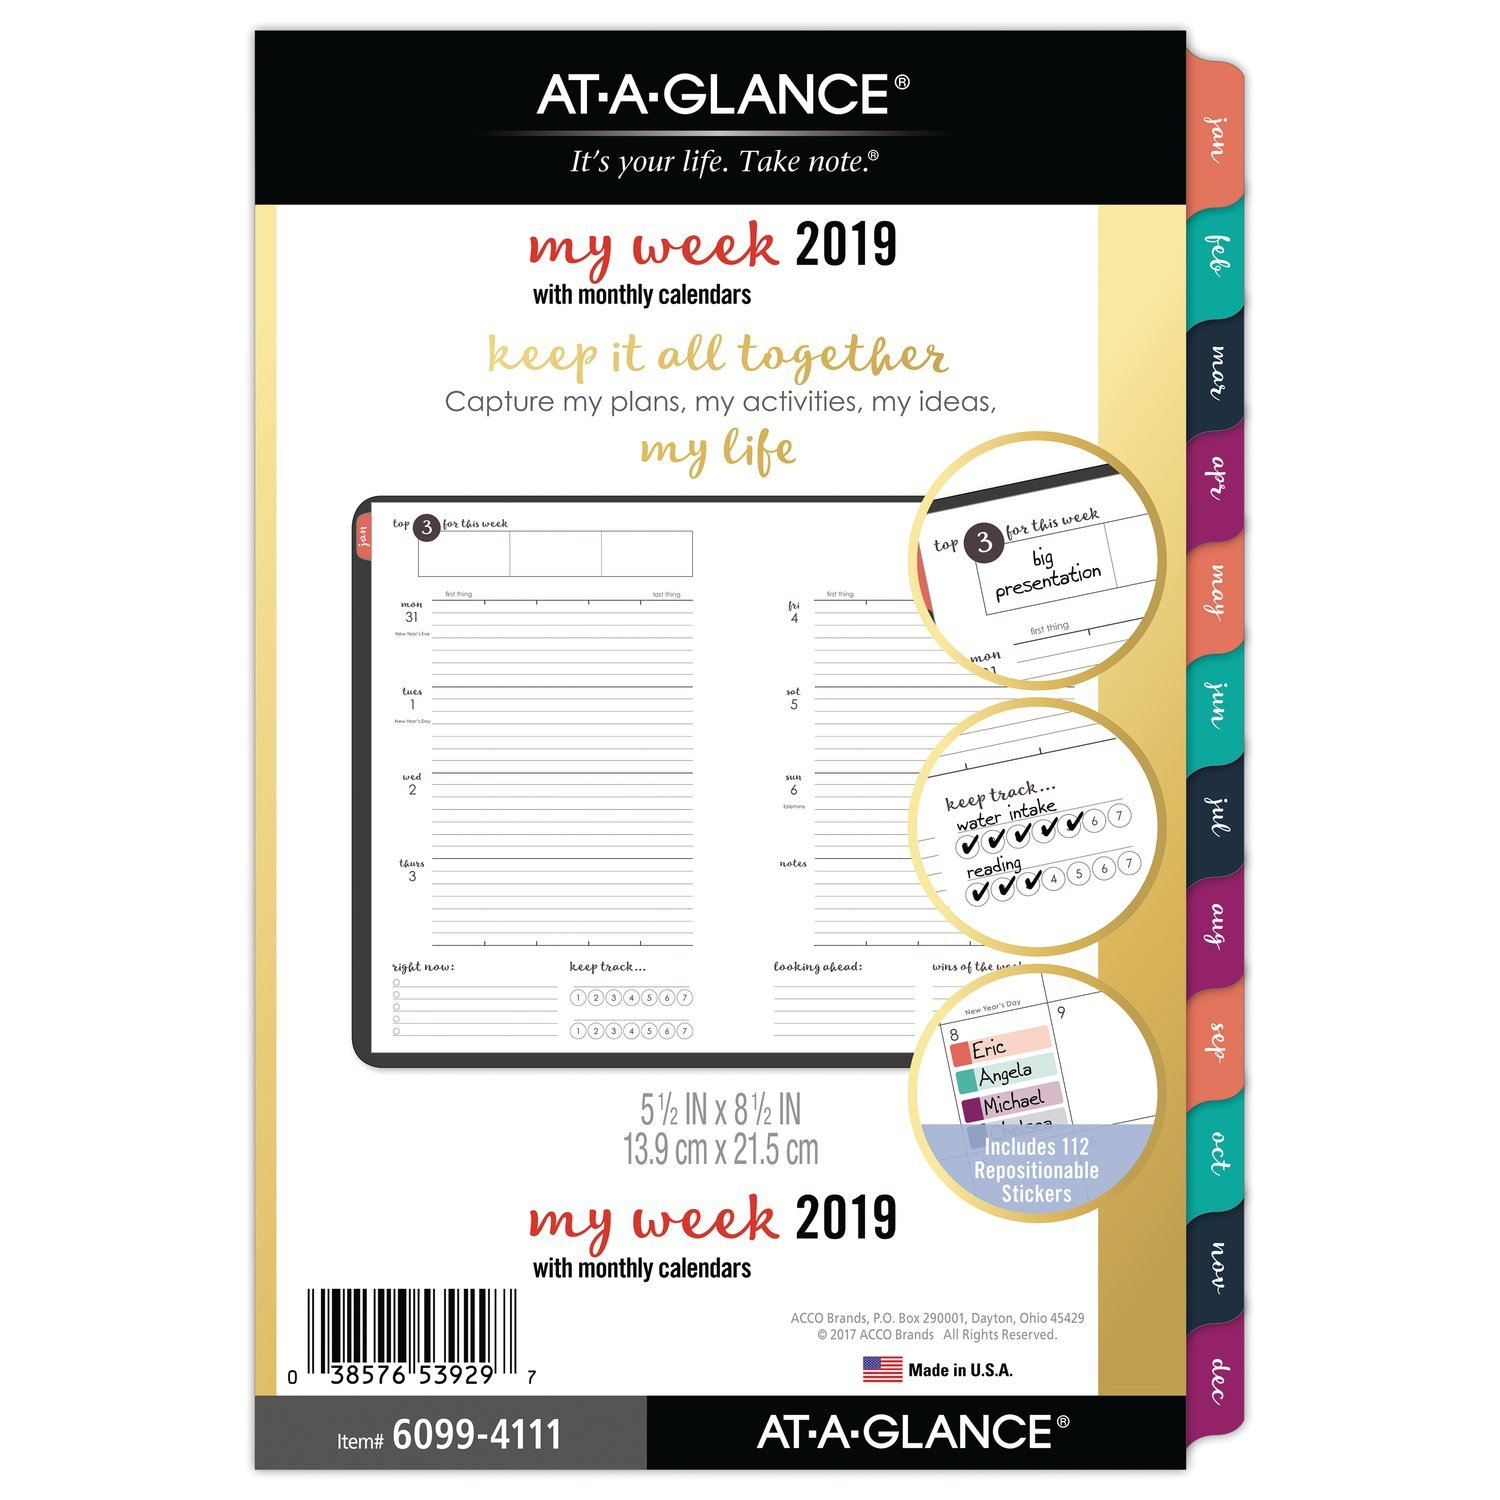 AT-A-GLANCE 2019 Weekly & Monthly Planner Refill, 5-1/2'' x 8-1/2'', Desk Size 4, Loose Leaf Harmony (6099-4111)